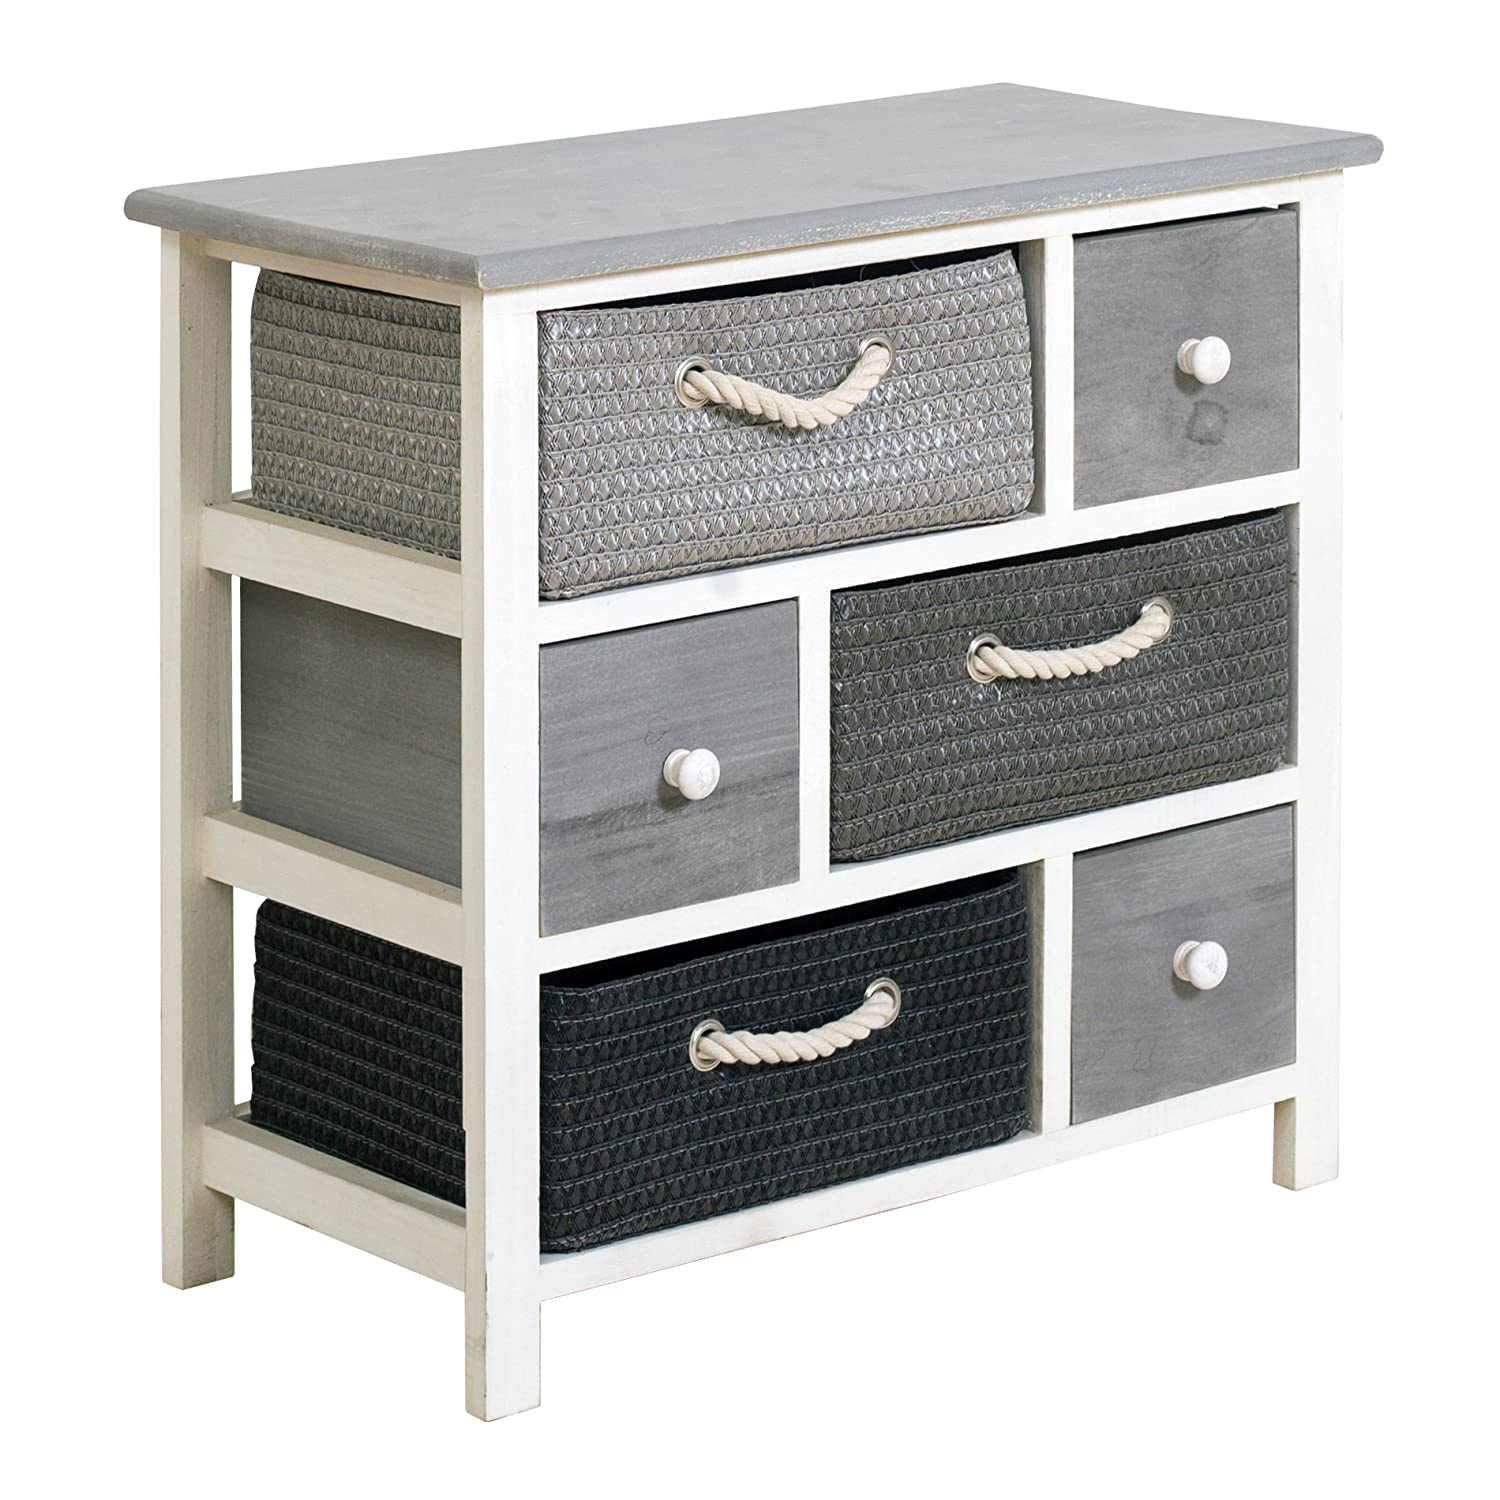 Rebecca srl Chest of Drawers Cabinet 6 Drawers REBECCA VIMINI Wood Wicker White Grey Modern Bedroom Living Room (Cod. RE4326)